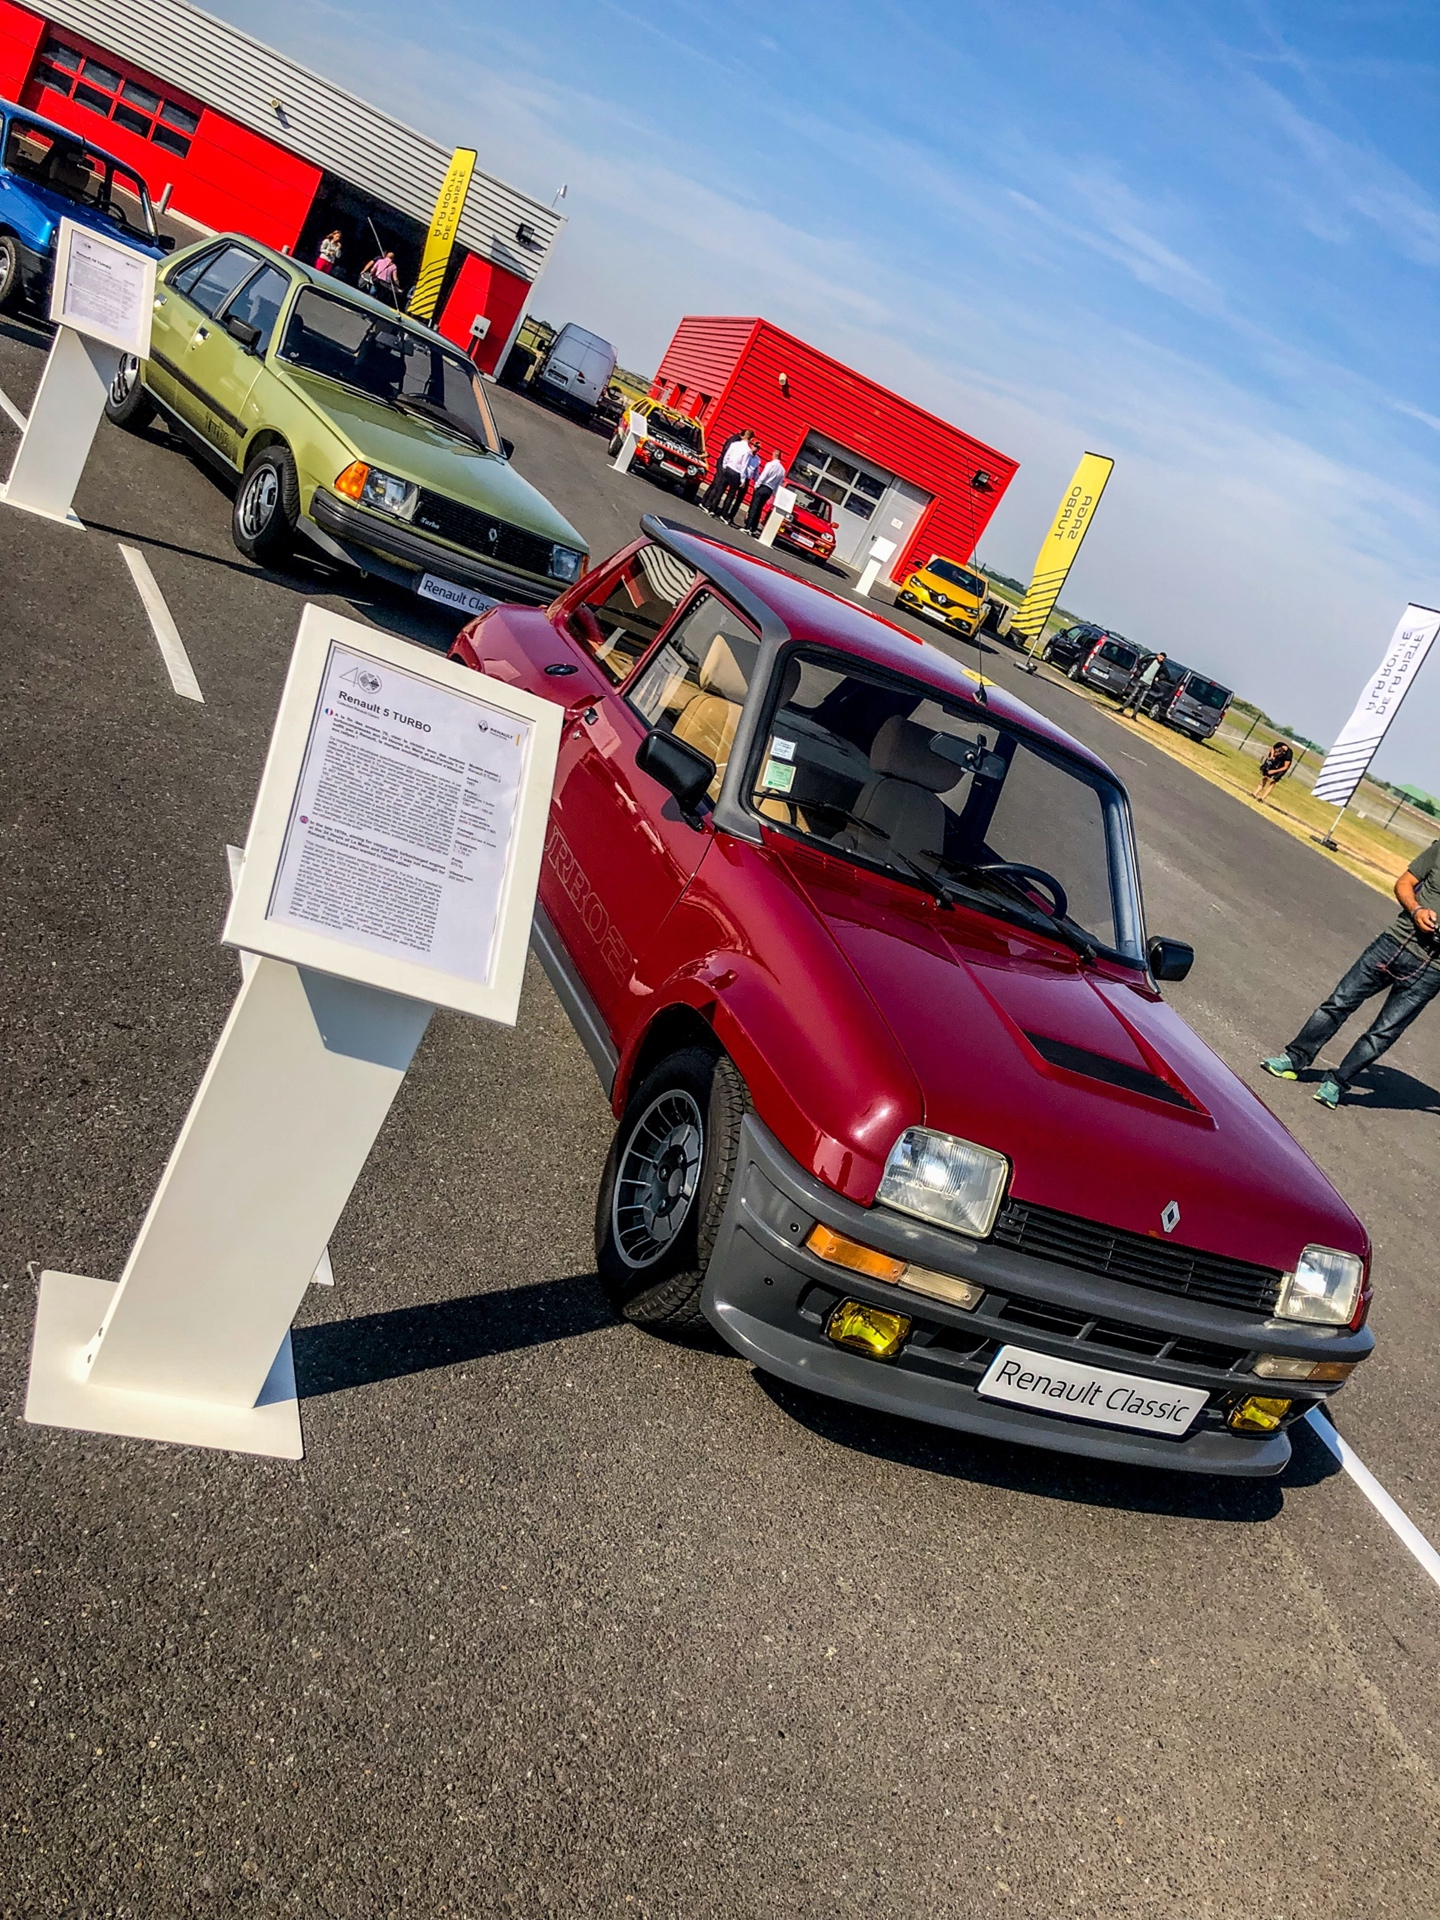 Renault_brand_bath_days_0000